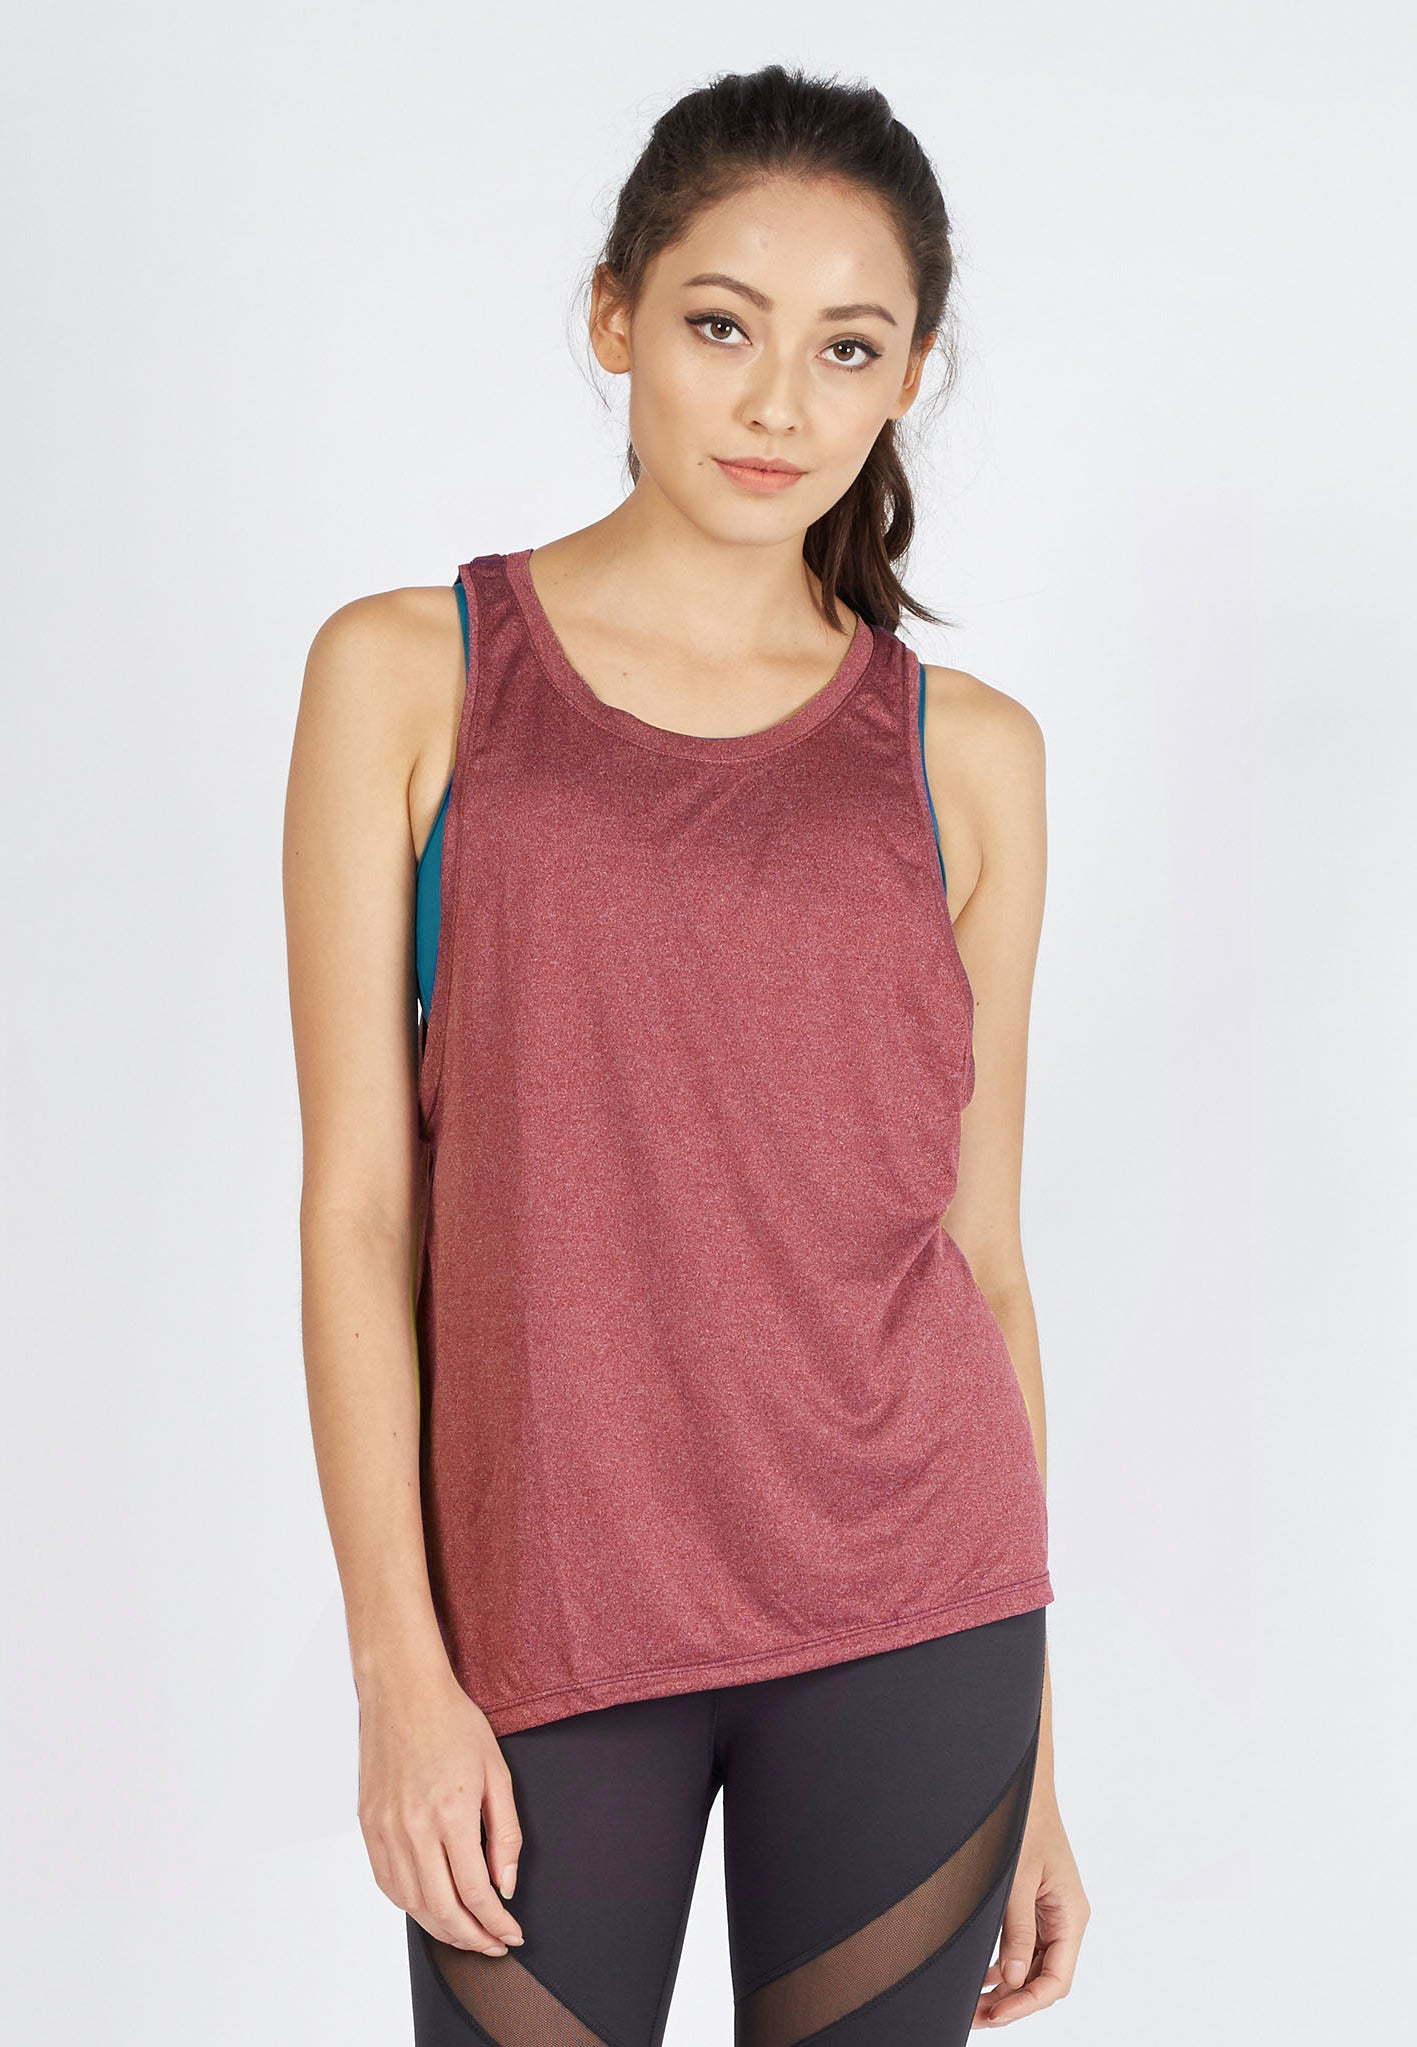 FUNFIT Agile Tank Top in Heather Red (S - 2XL)